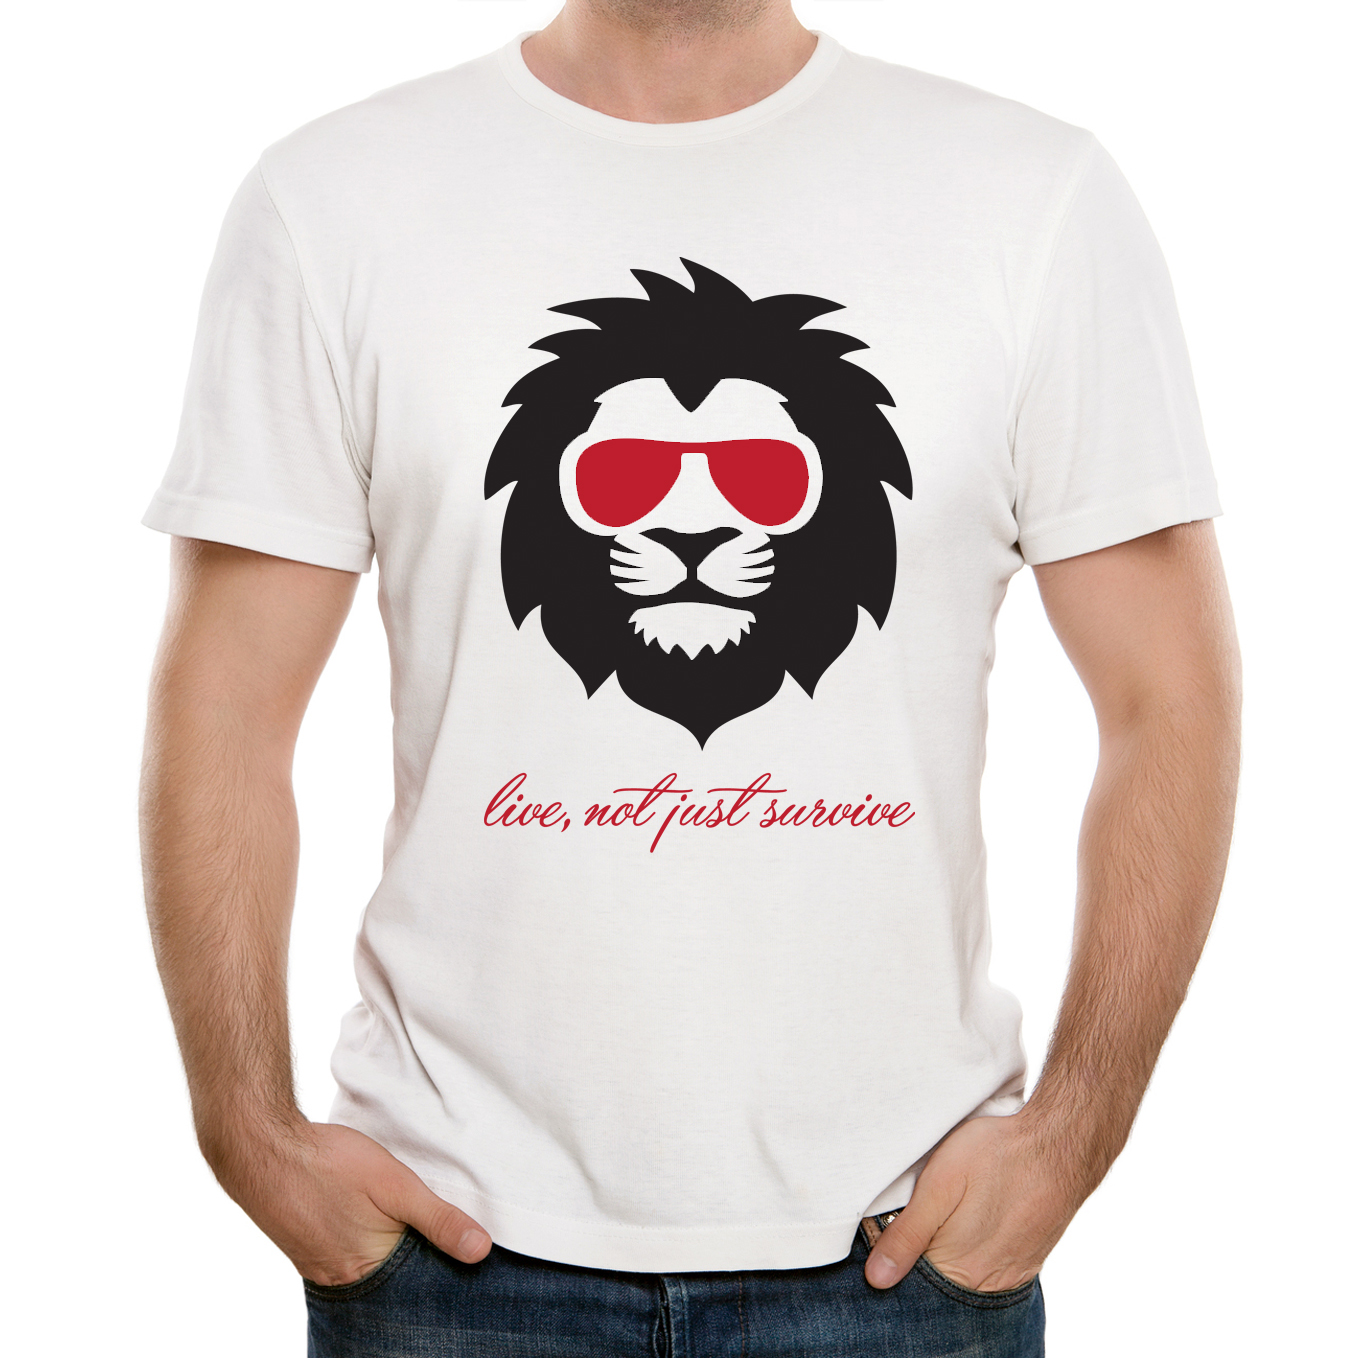 Shirtlion_charity_gents_white1